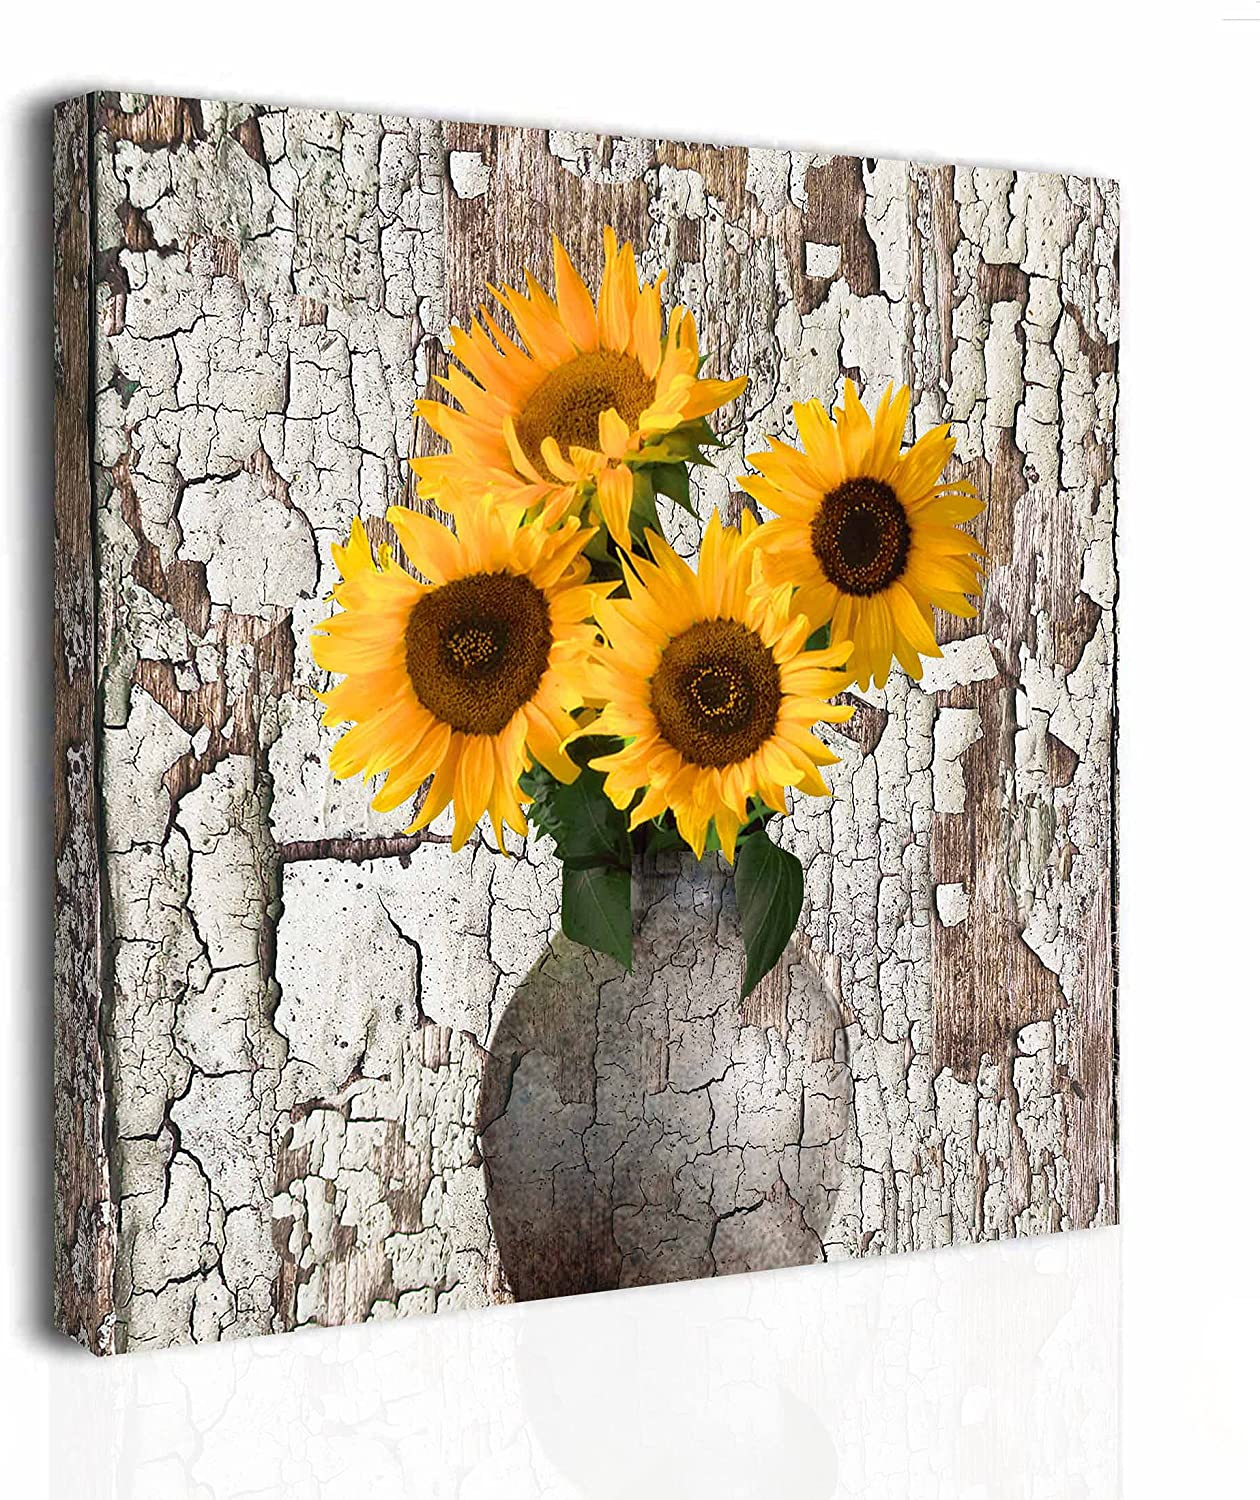 Sunflower Canvas Wall Art Decor Rustic Country Farmhouse Countryside Wood Decorations for Living Room Dining room Floral Yellow Brown Vintage Artwork 13.4*13.4 inch